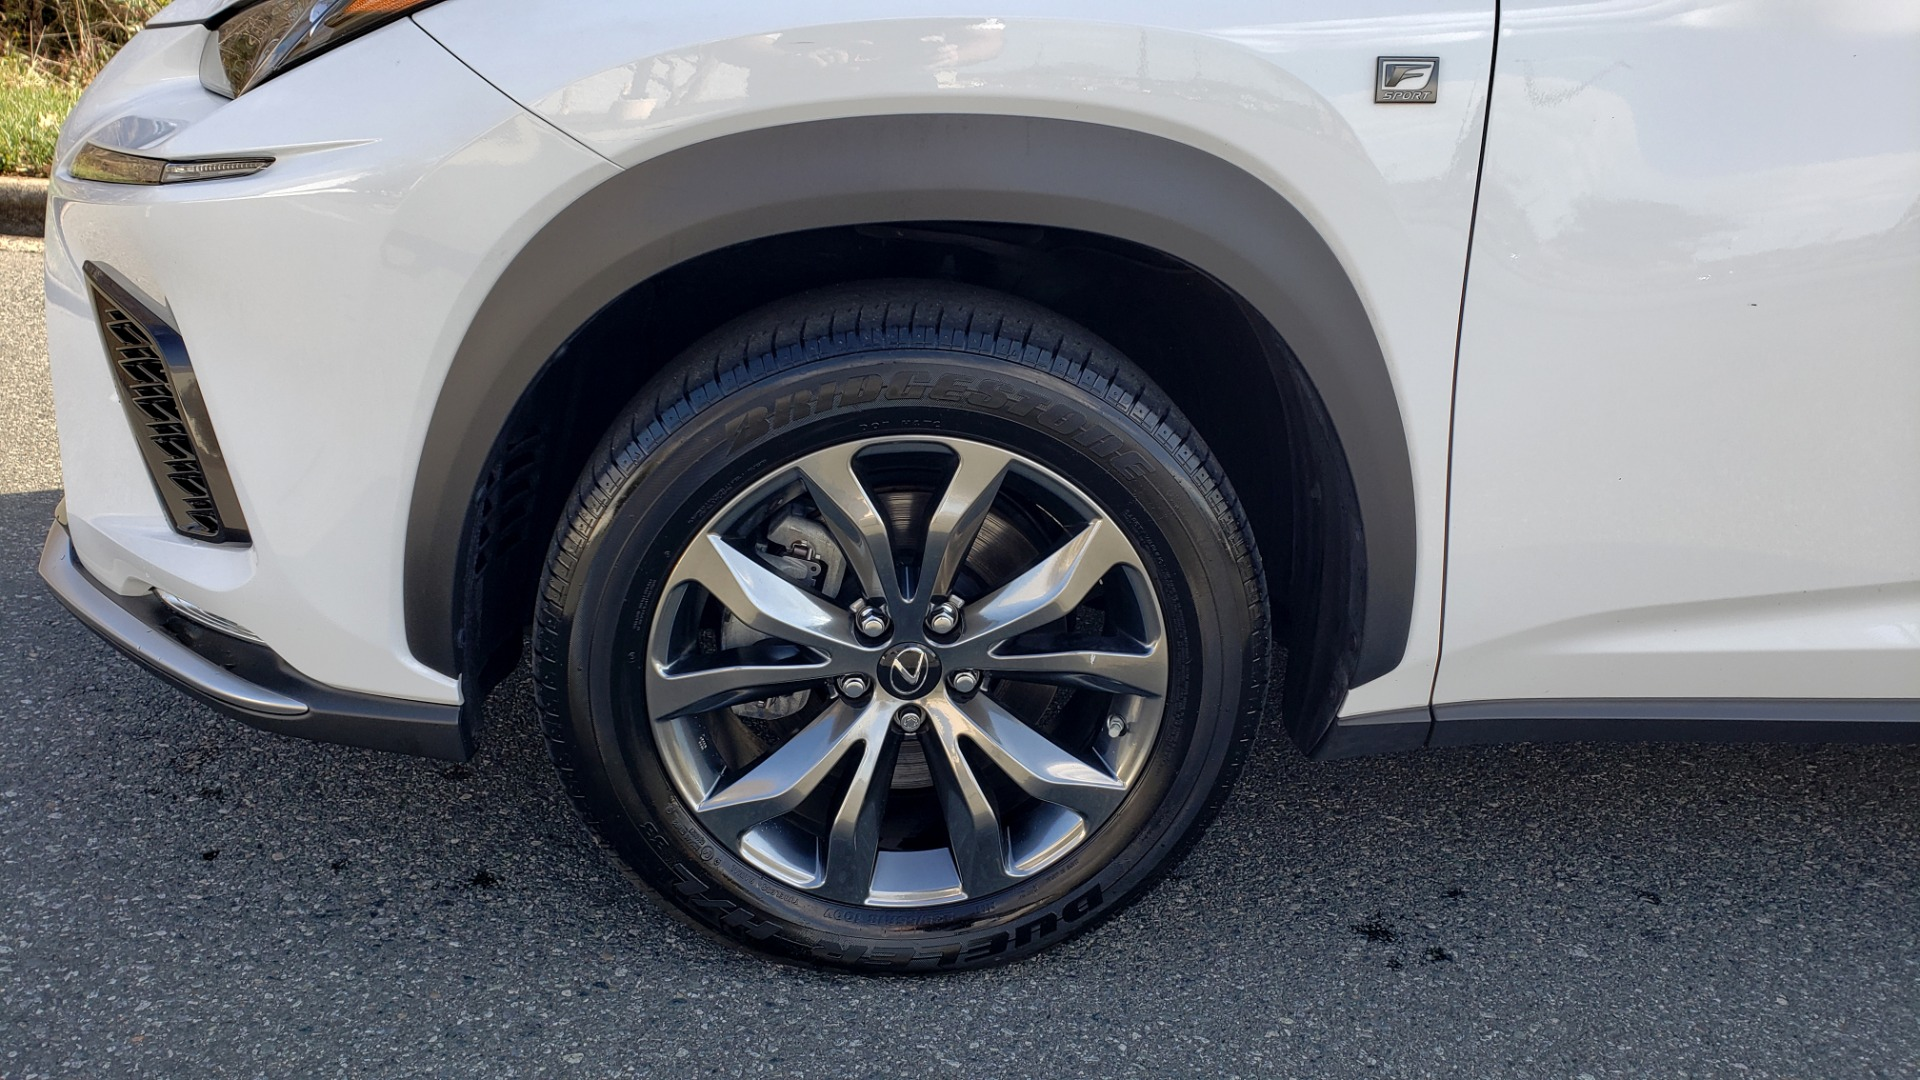 Used 2019 Lexus NX 300 F-SPORT / 2.0L TURBO / LEATHER / 18IN WHEELS / REARVIEW for sale Sold at Formula Imports in Charlotte NC 28227 82